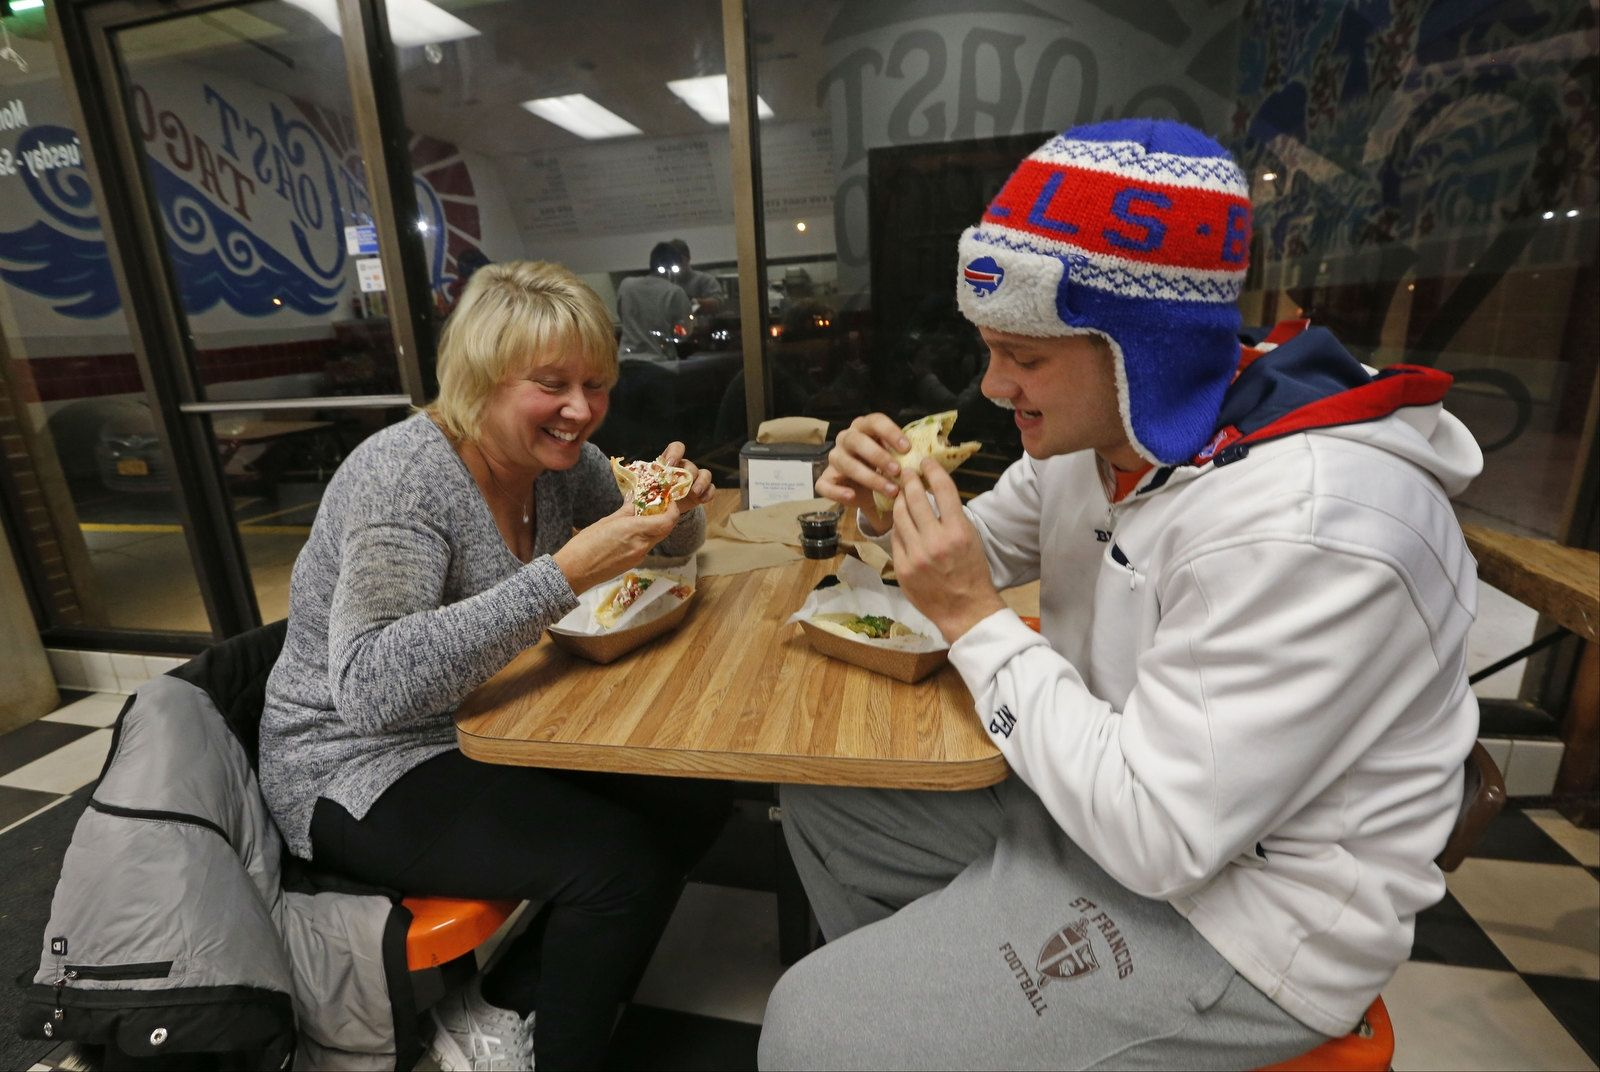 Customers Jerry Hickson, right, and his mother Pam enjoy tacos at Left Coast Taco.